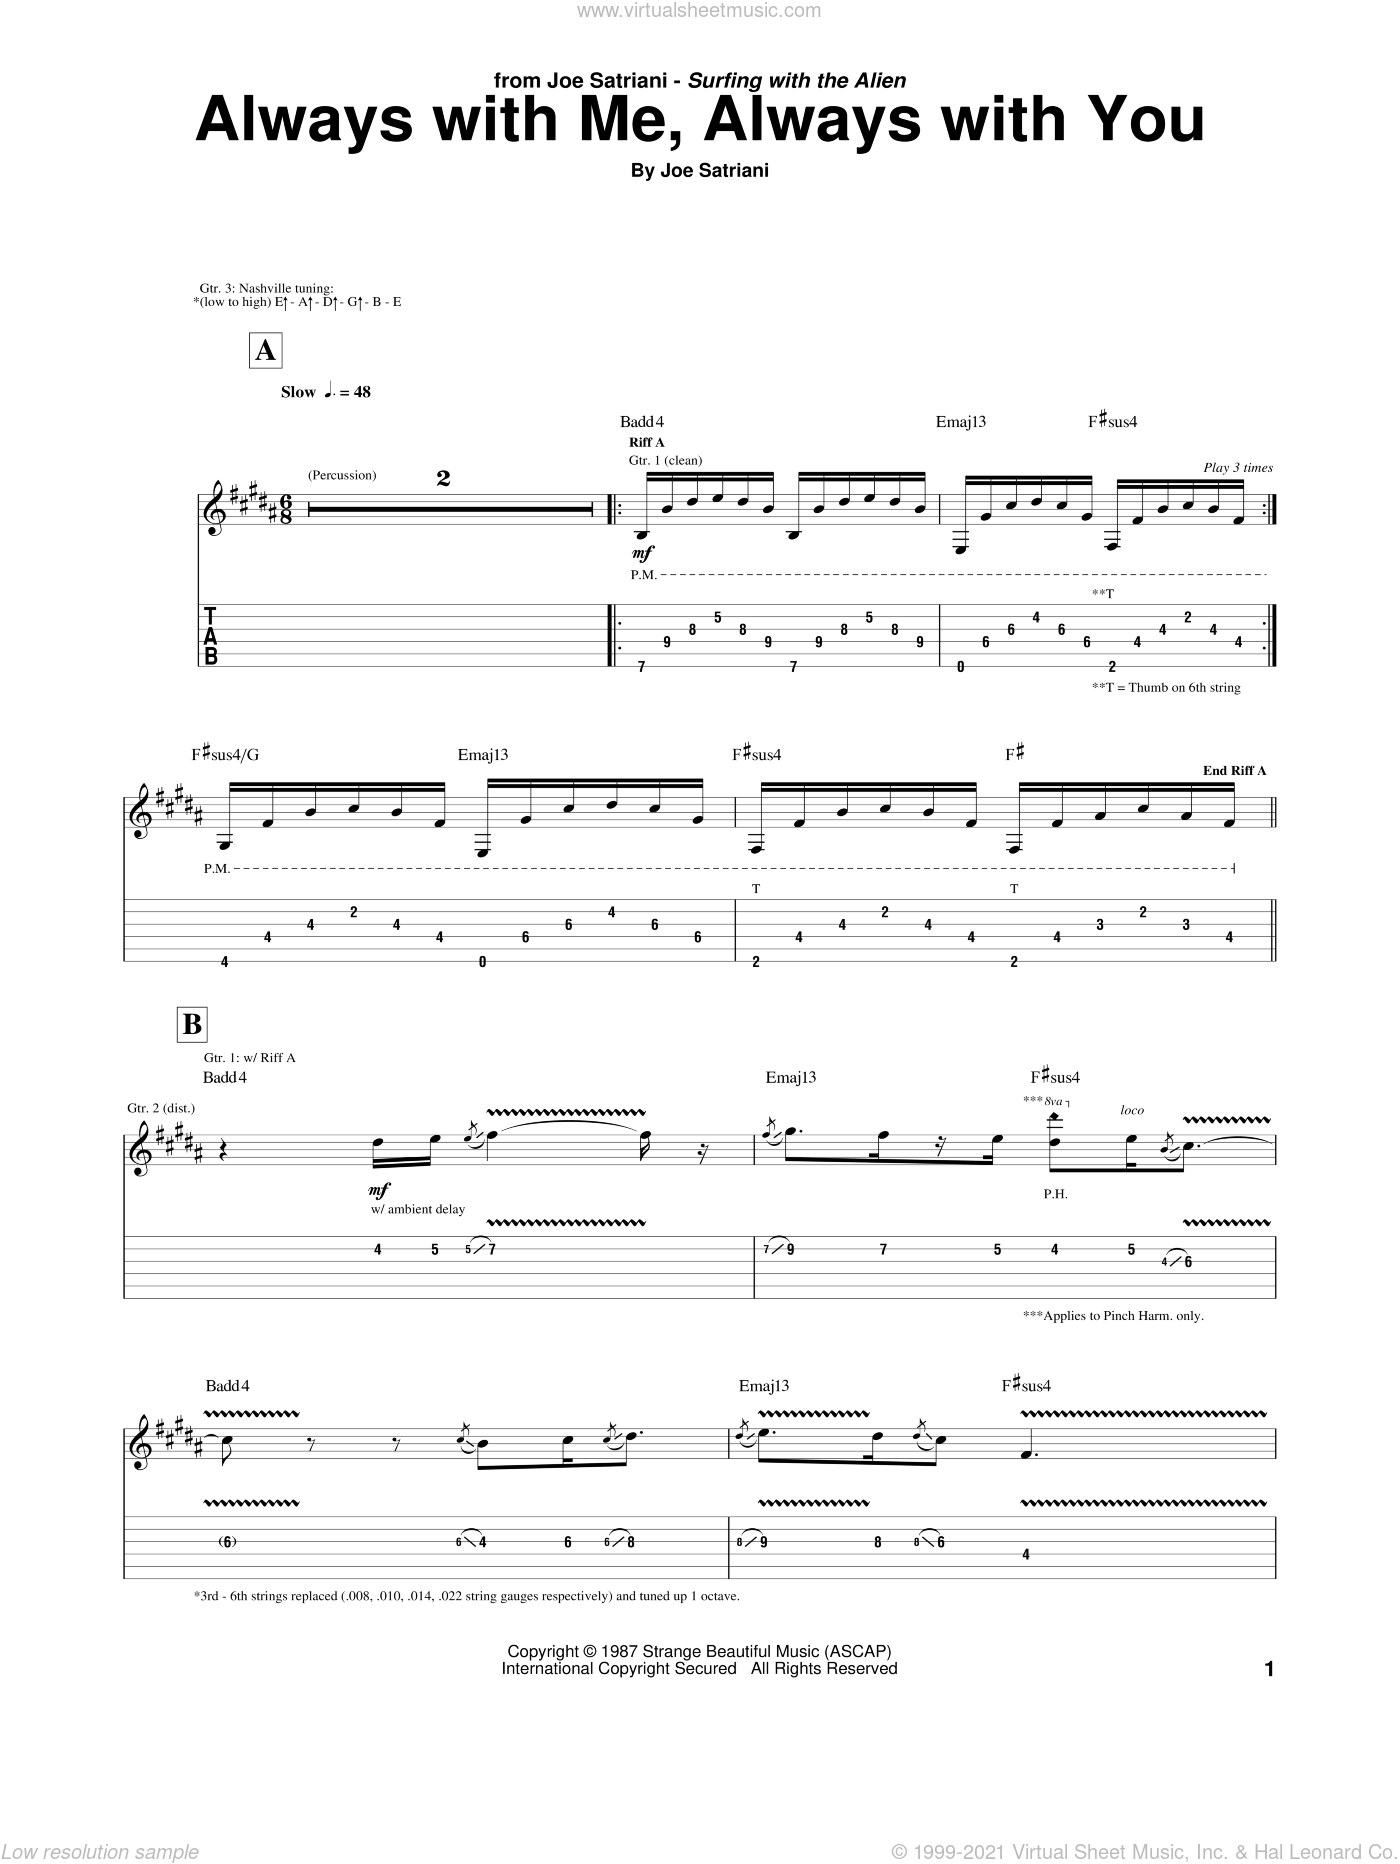 Always With Me, Always With You sheet music for guitar (tablature) by Joe Satriani, intermediate. Score Image Preview.